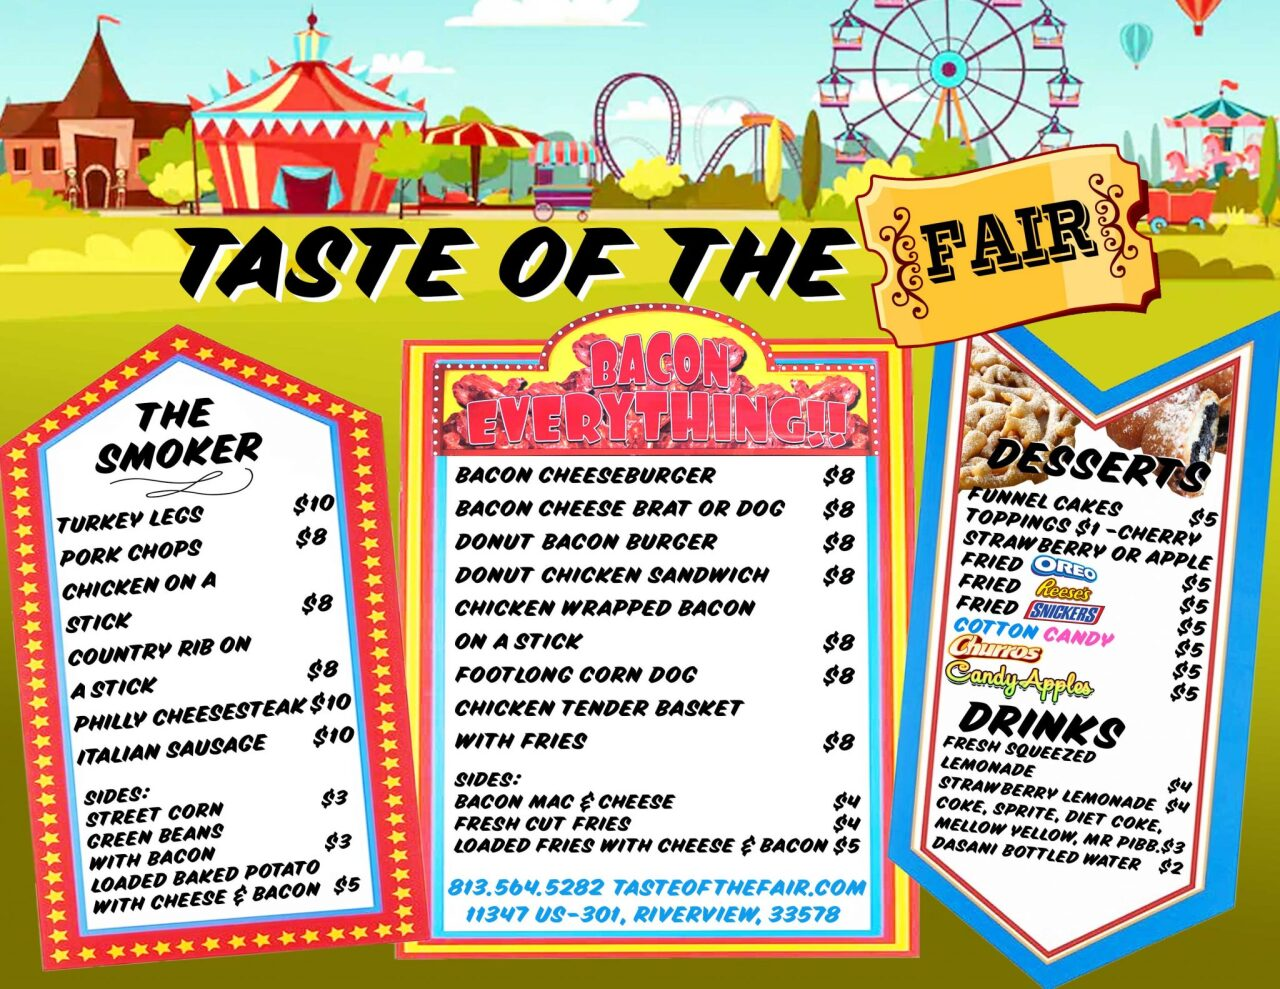 Taste-of-the-fair-menu.jpg